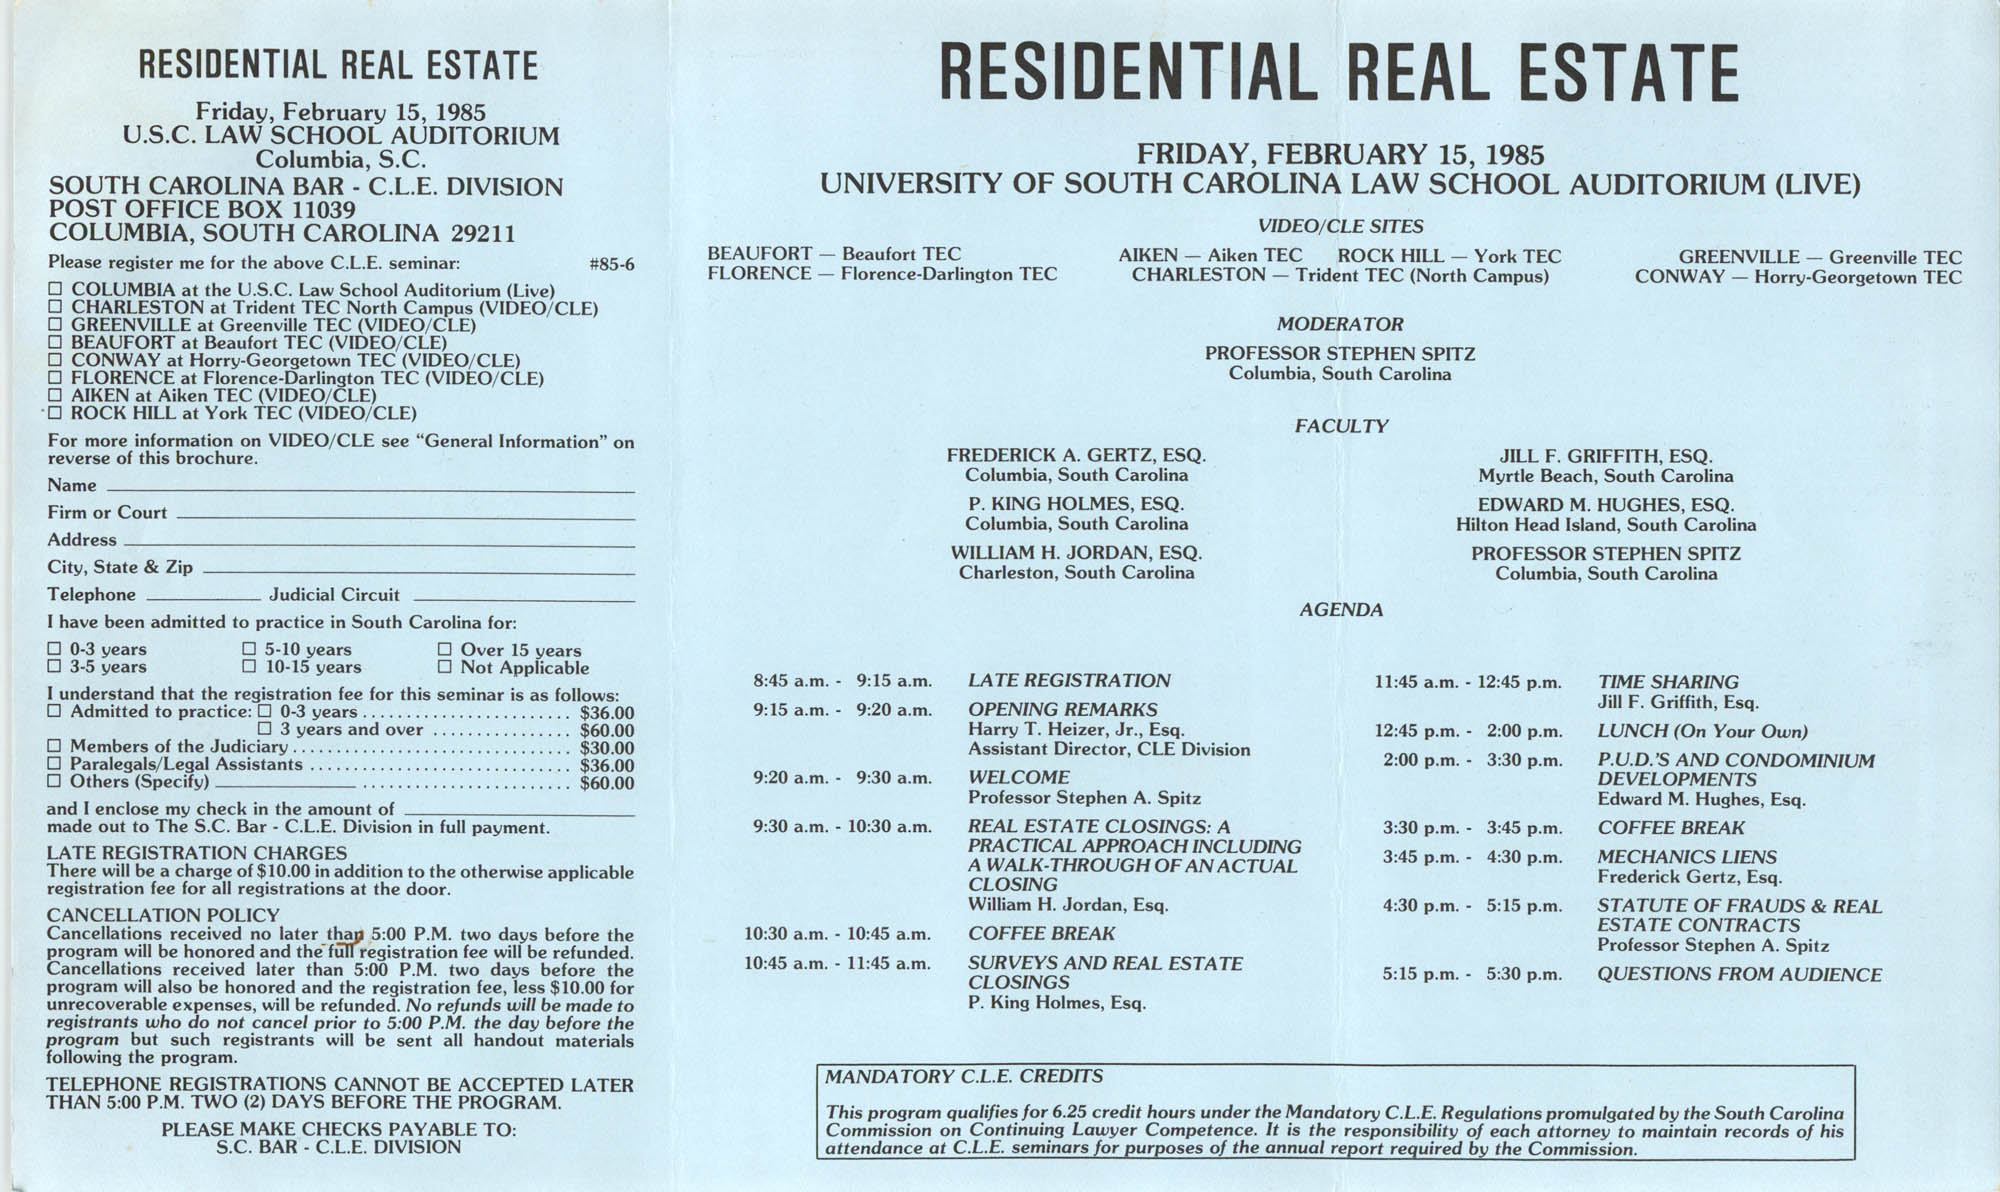 Understanding Residential Real Estate, Video/CLE Seminar Pamphlet, February 15, 1985